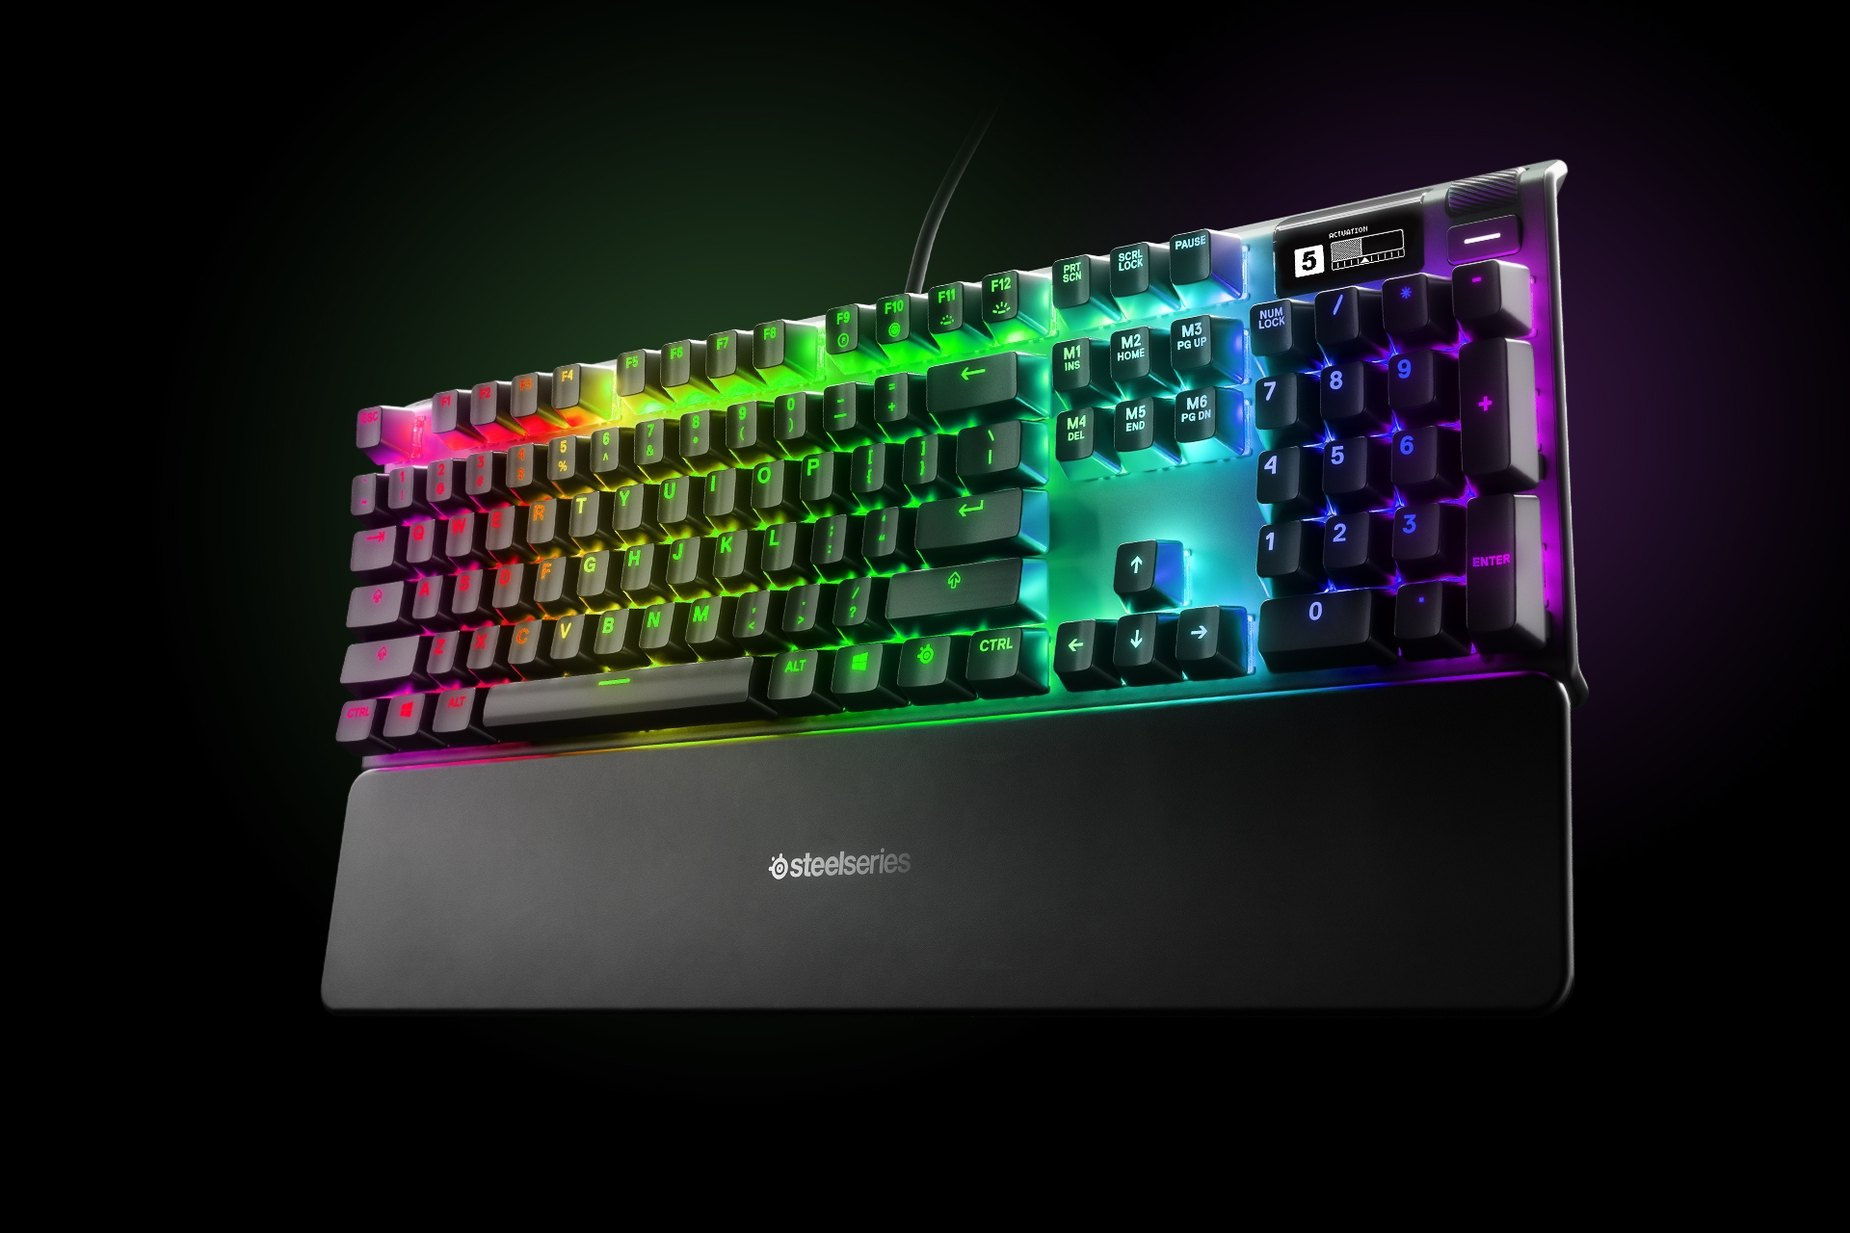 Japanese - APEX PRO gaming keyboard with the illumination lit up on dark background, also shows the OLED screen and controls used to change settings, switch actuation, and adjust audio